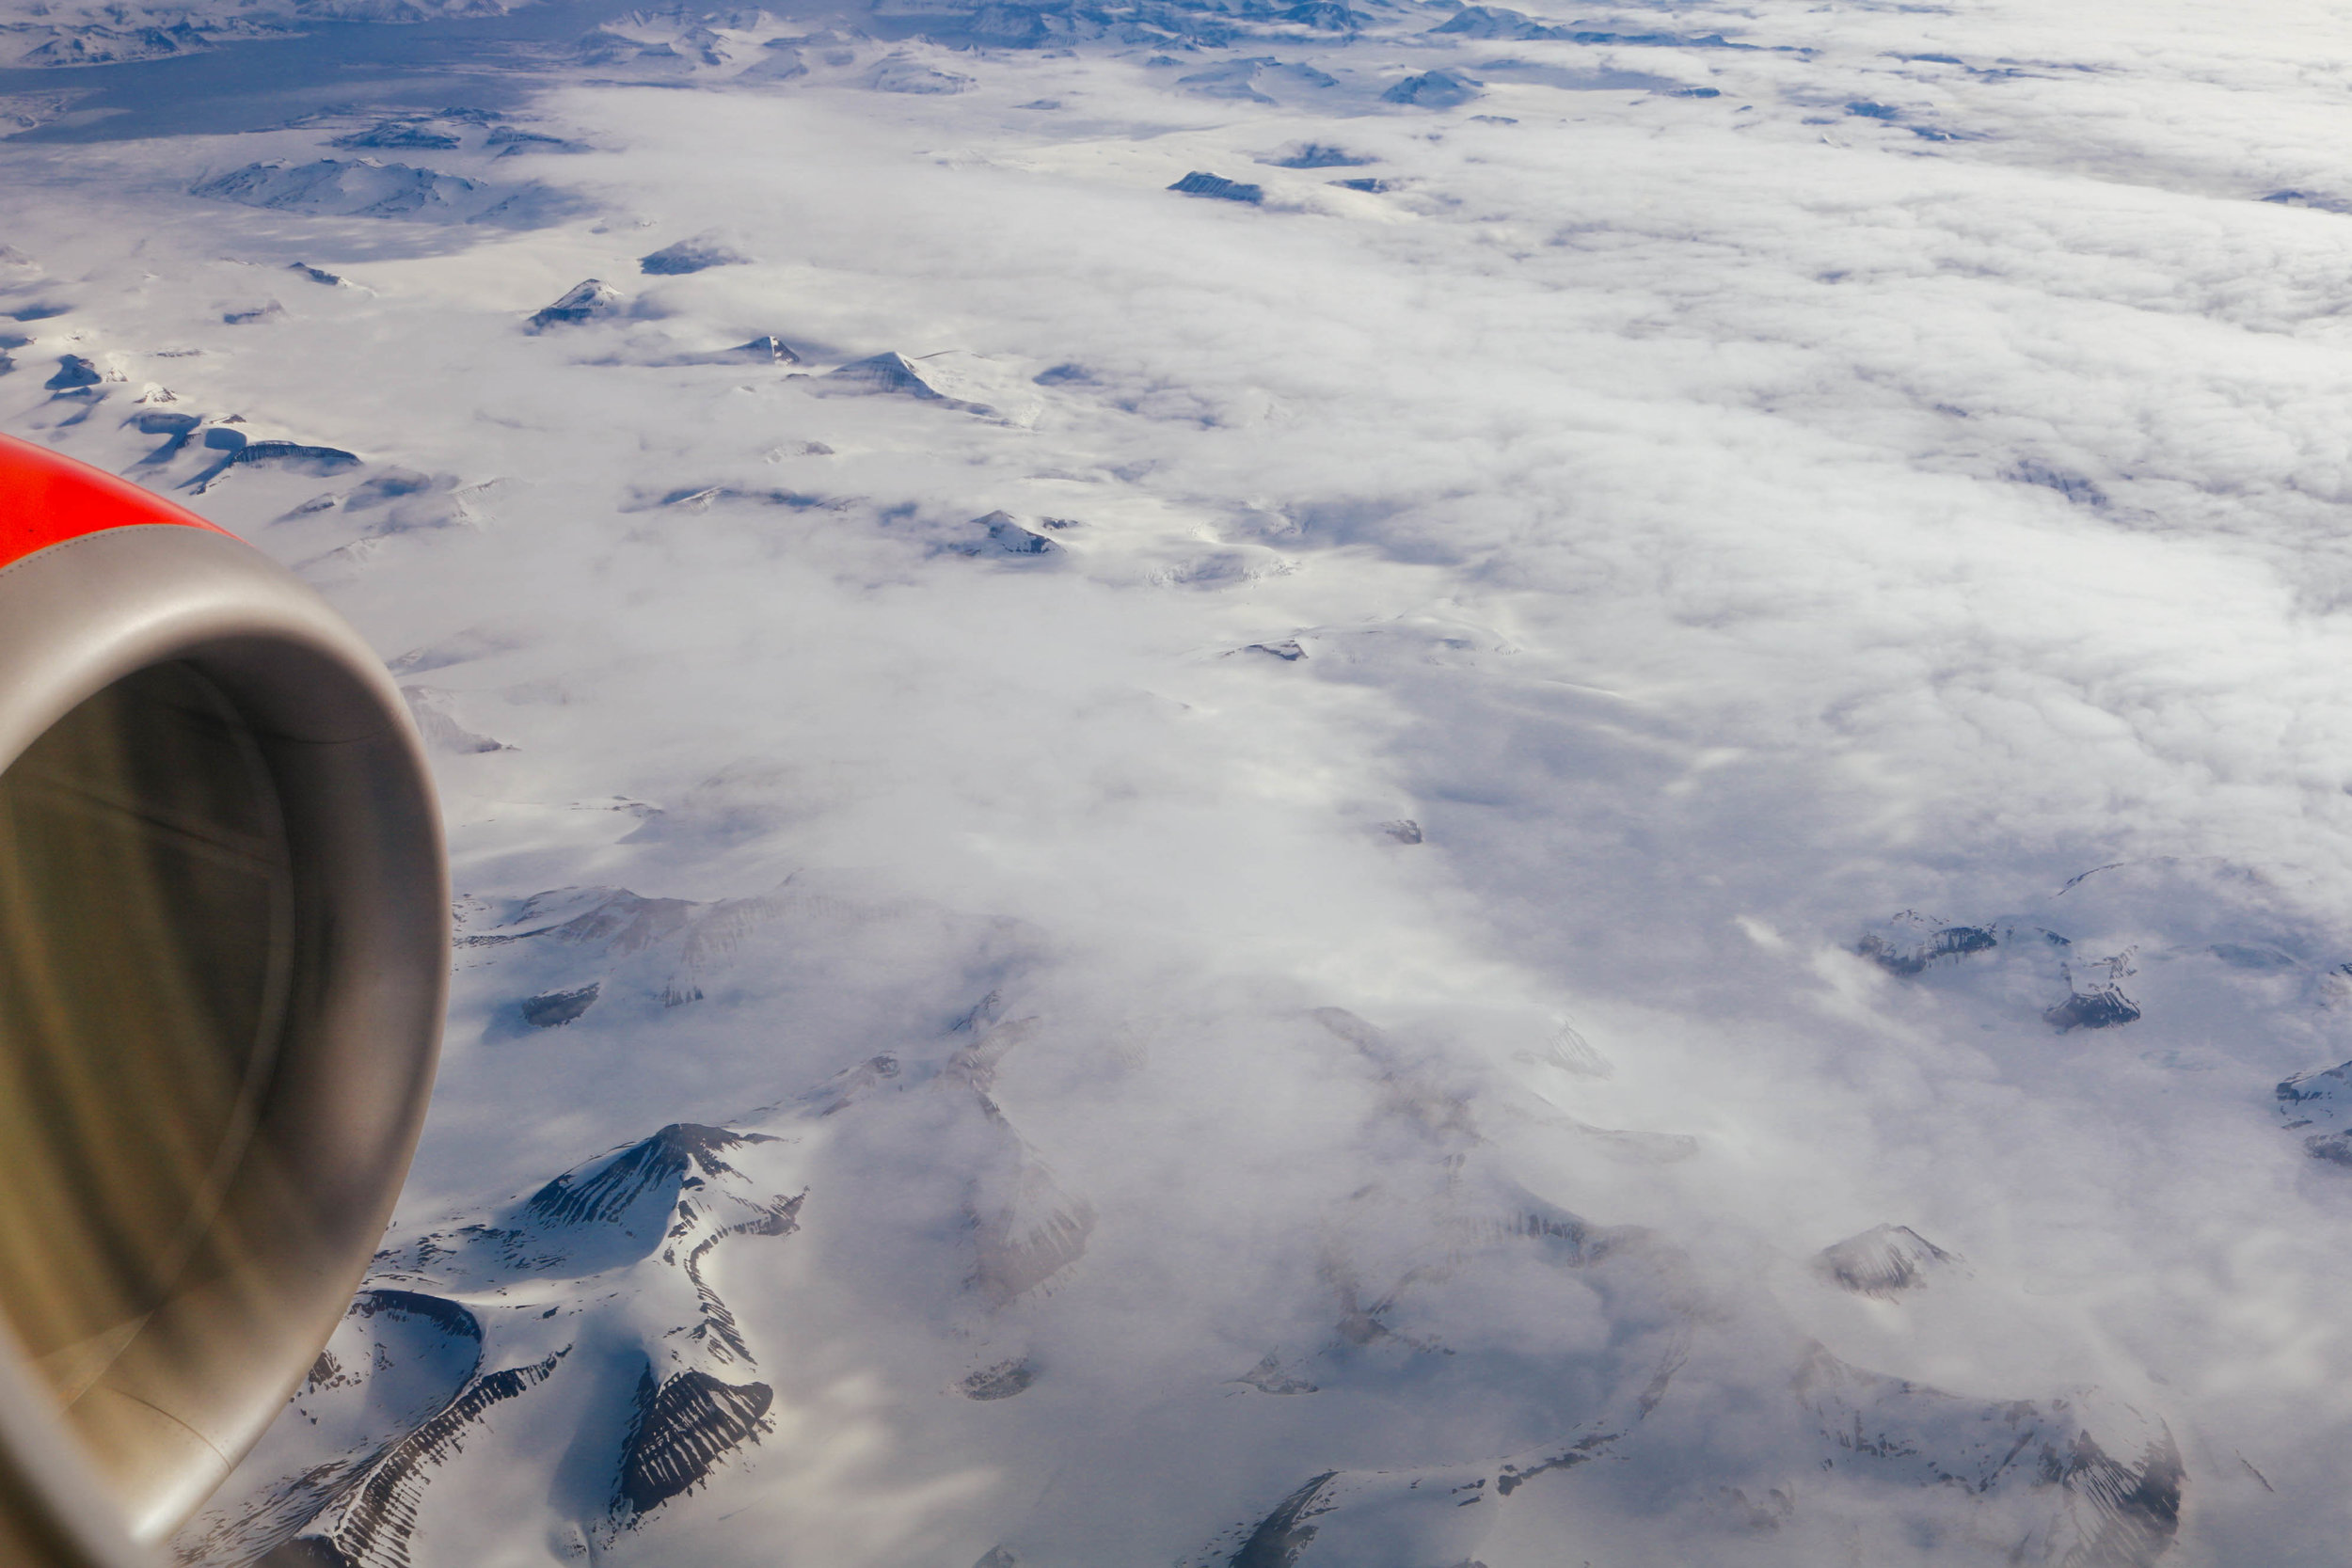 This might be your view flying over Northern Norway...